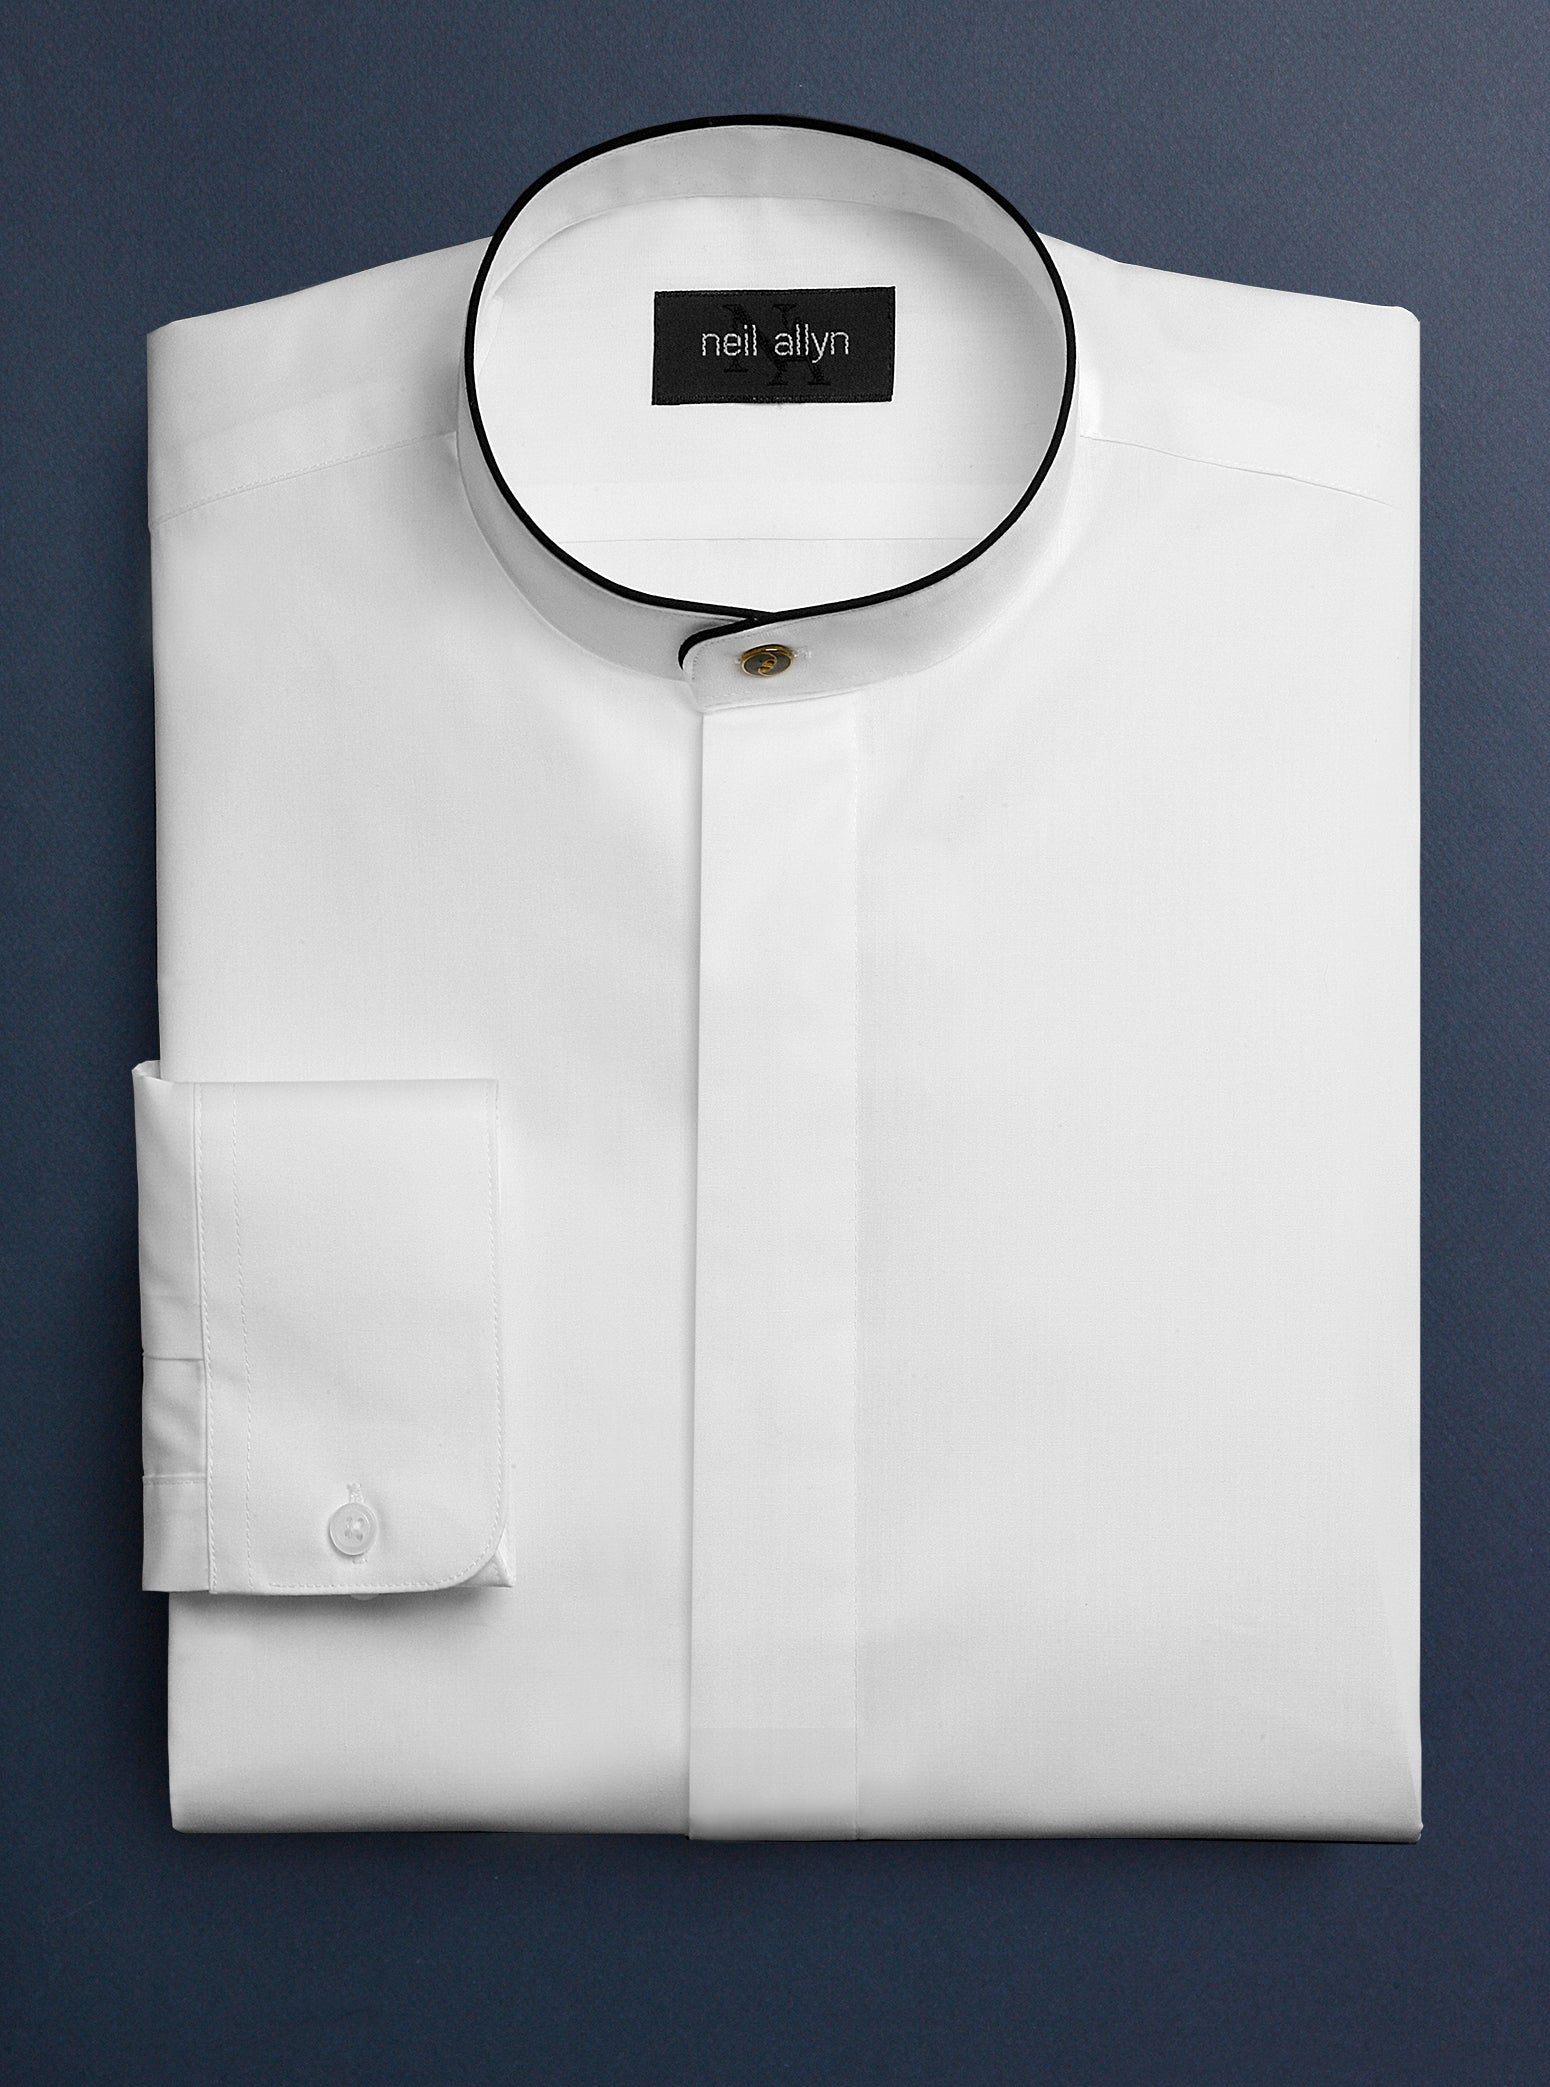 Men's Mandarin Dress Shirt with Fly Placket & Black Trim - Caterwear.com